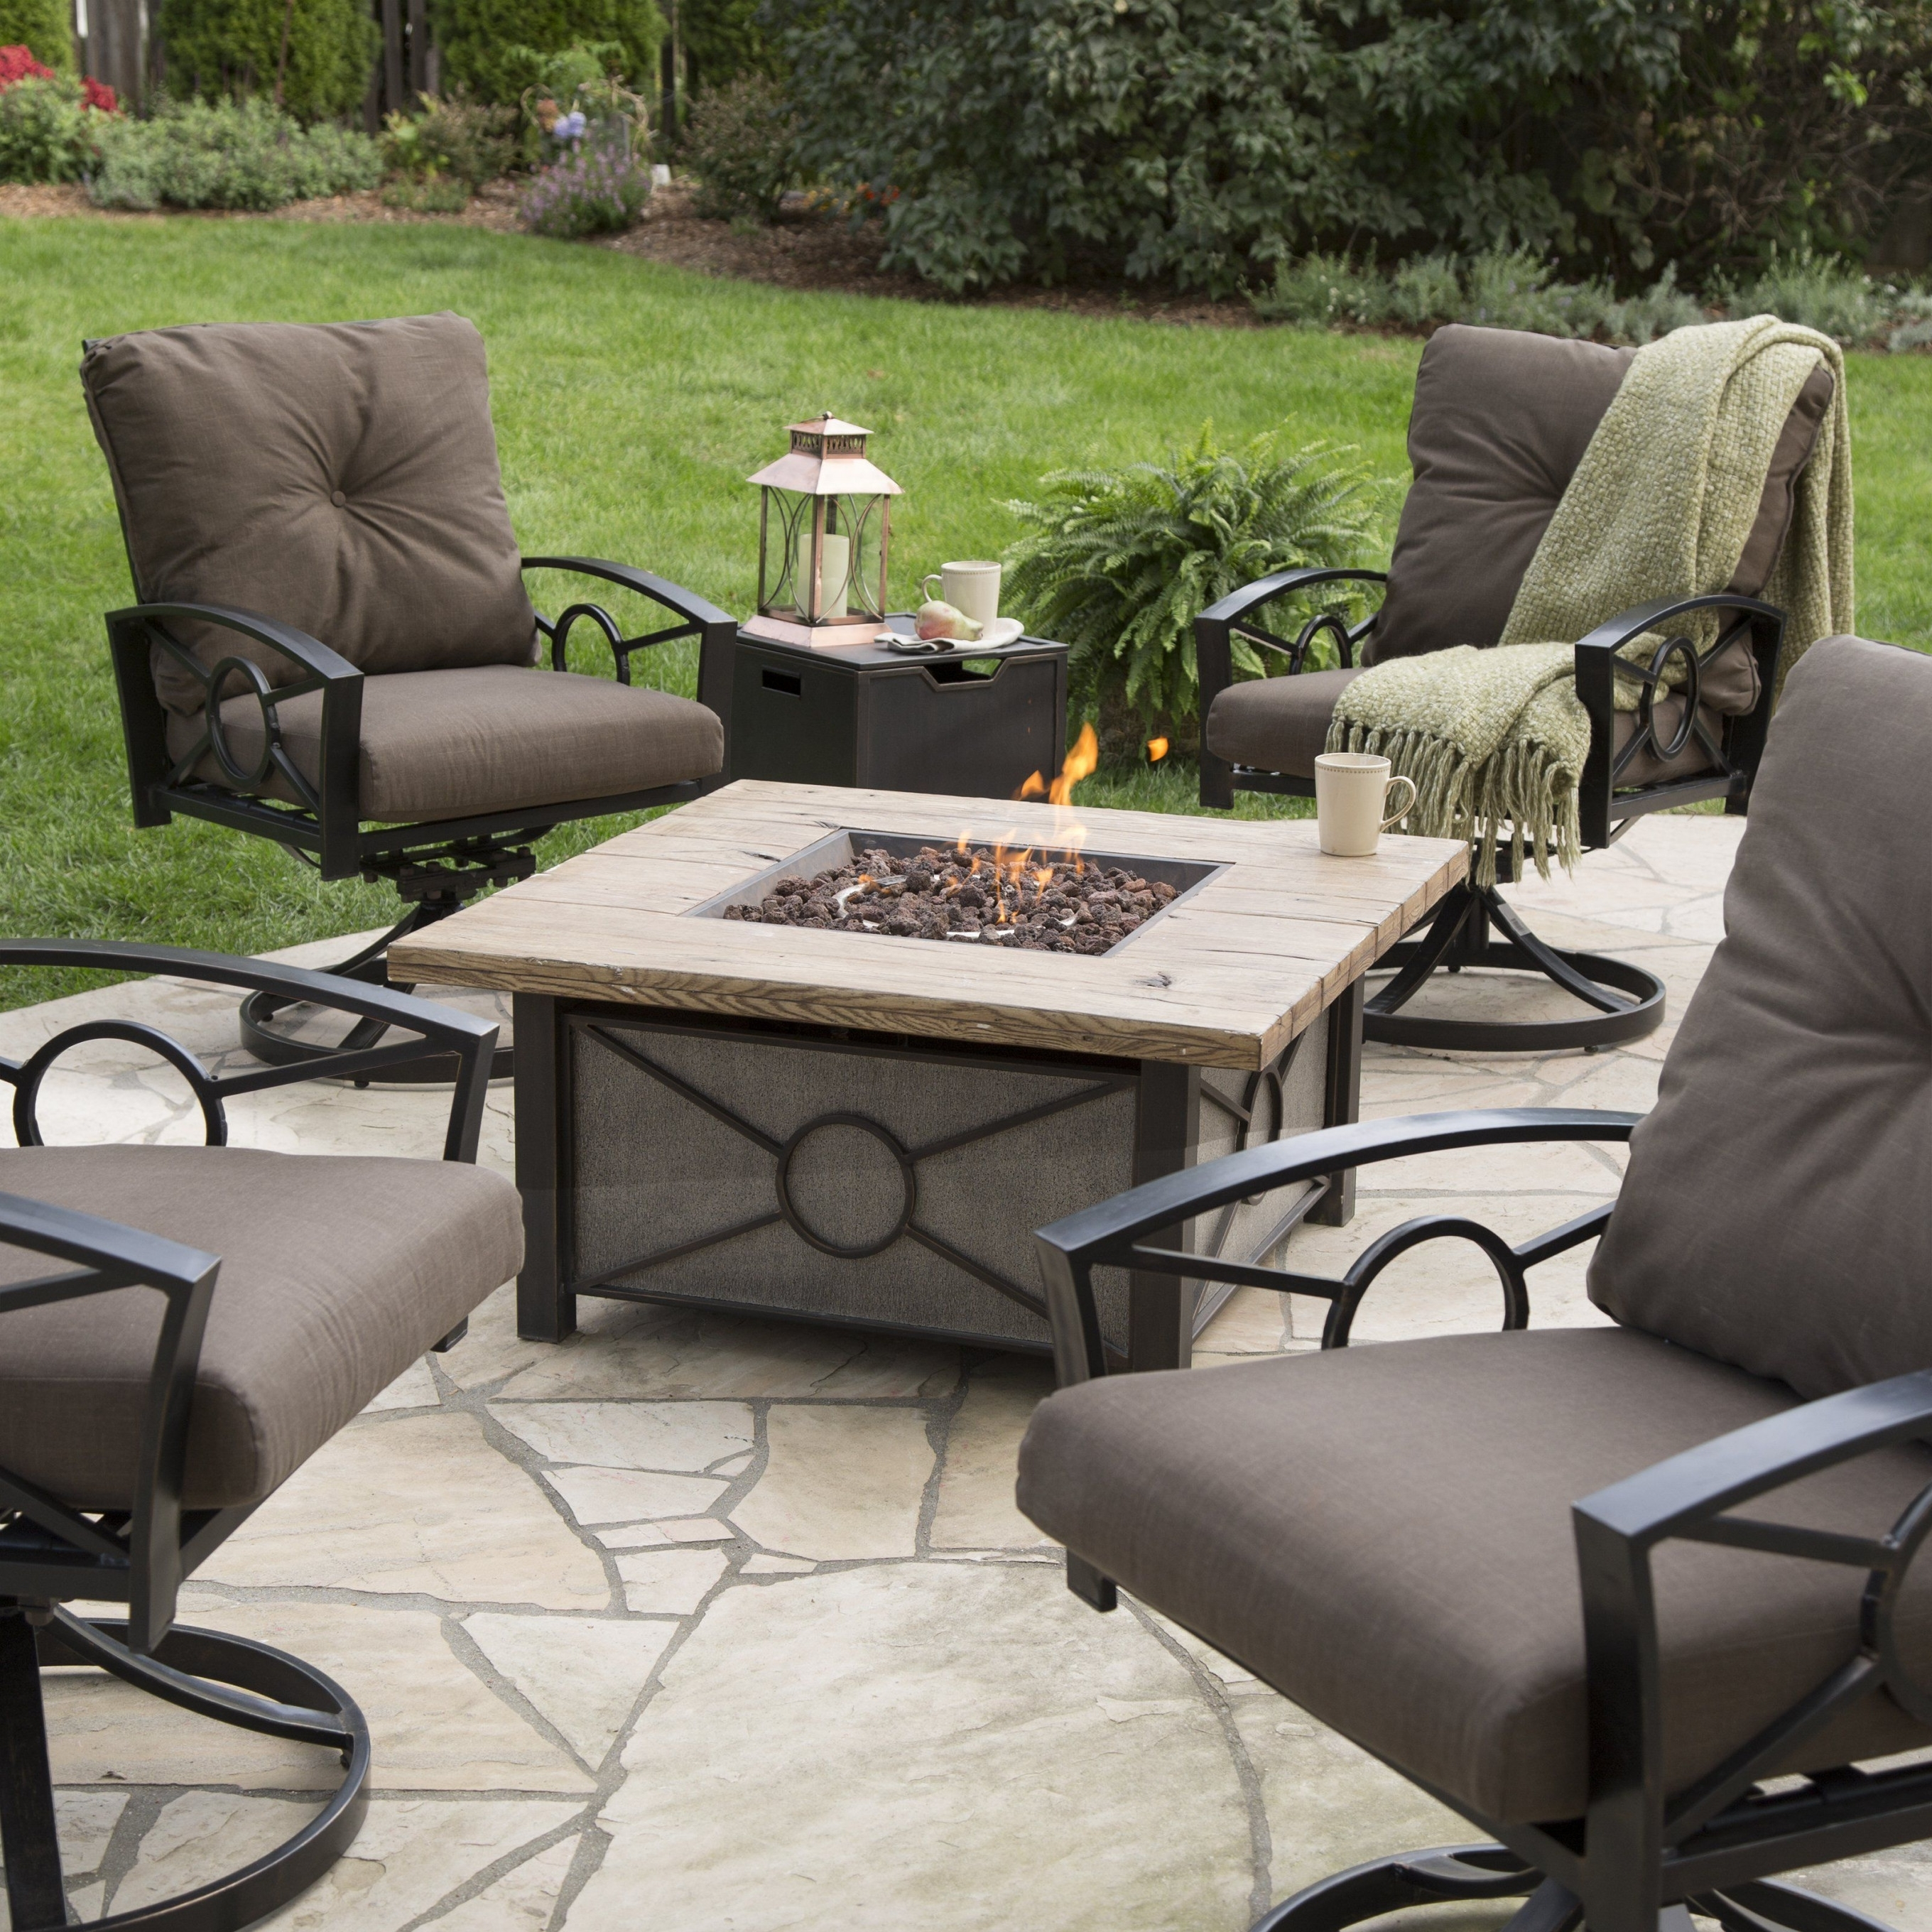 Most Popular Hayneedle Patio Conversation Sets Intended For Valuable Gas Fire Pit Conversation Set Red Ember Dillon Table Chat (View 9 of 15)